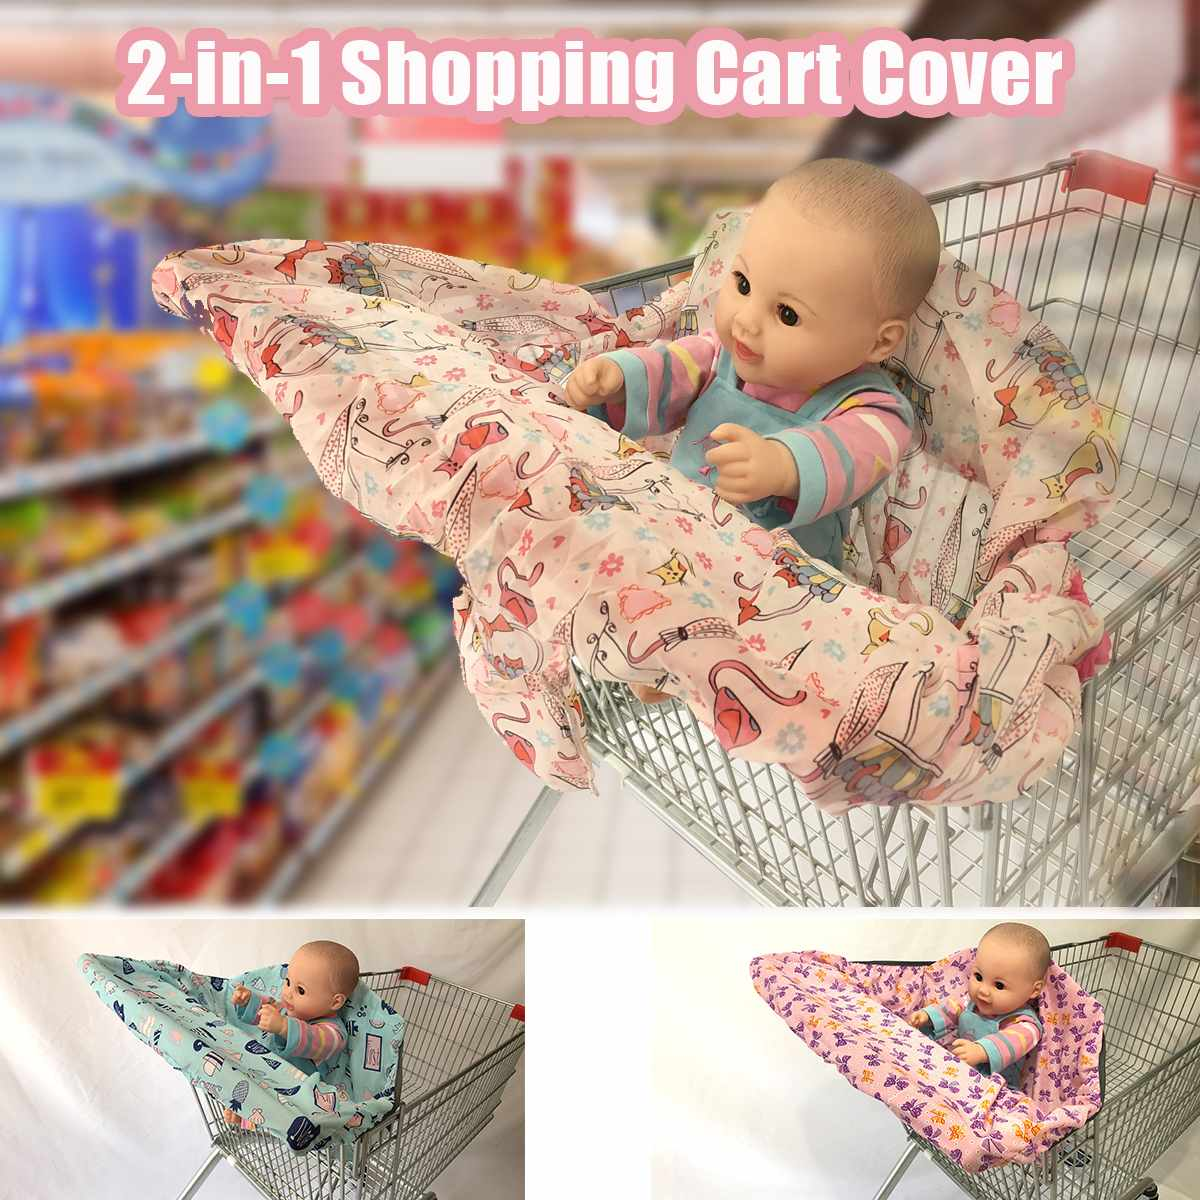 Baby Children Folding Shopping Cart Cover Baby Shopping Push Cart Protection Cover Trolley Seat Protection Safety Seats For Kids